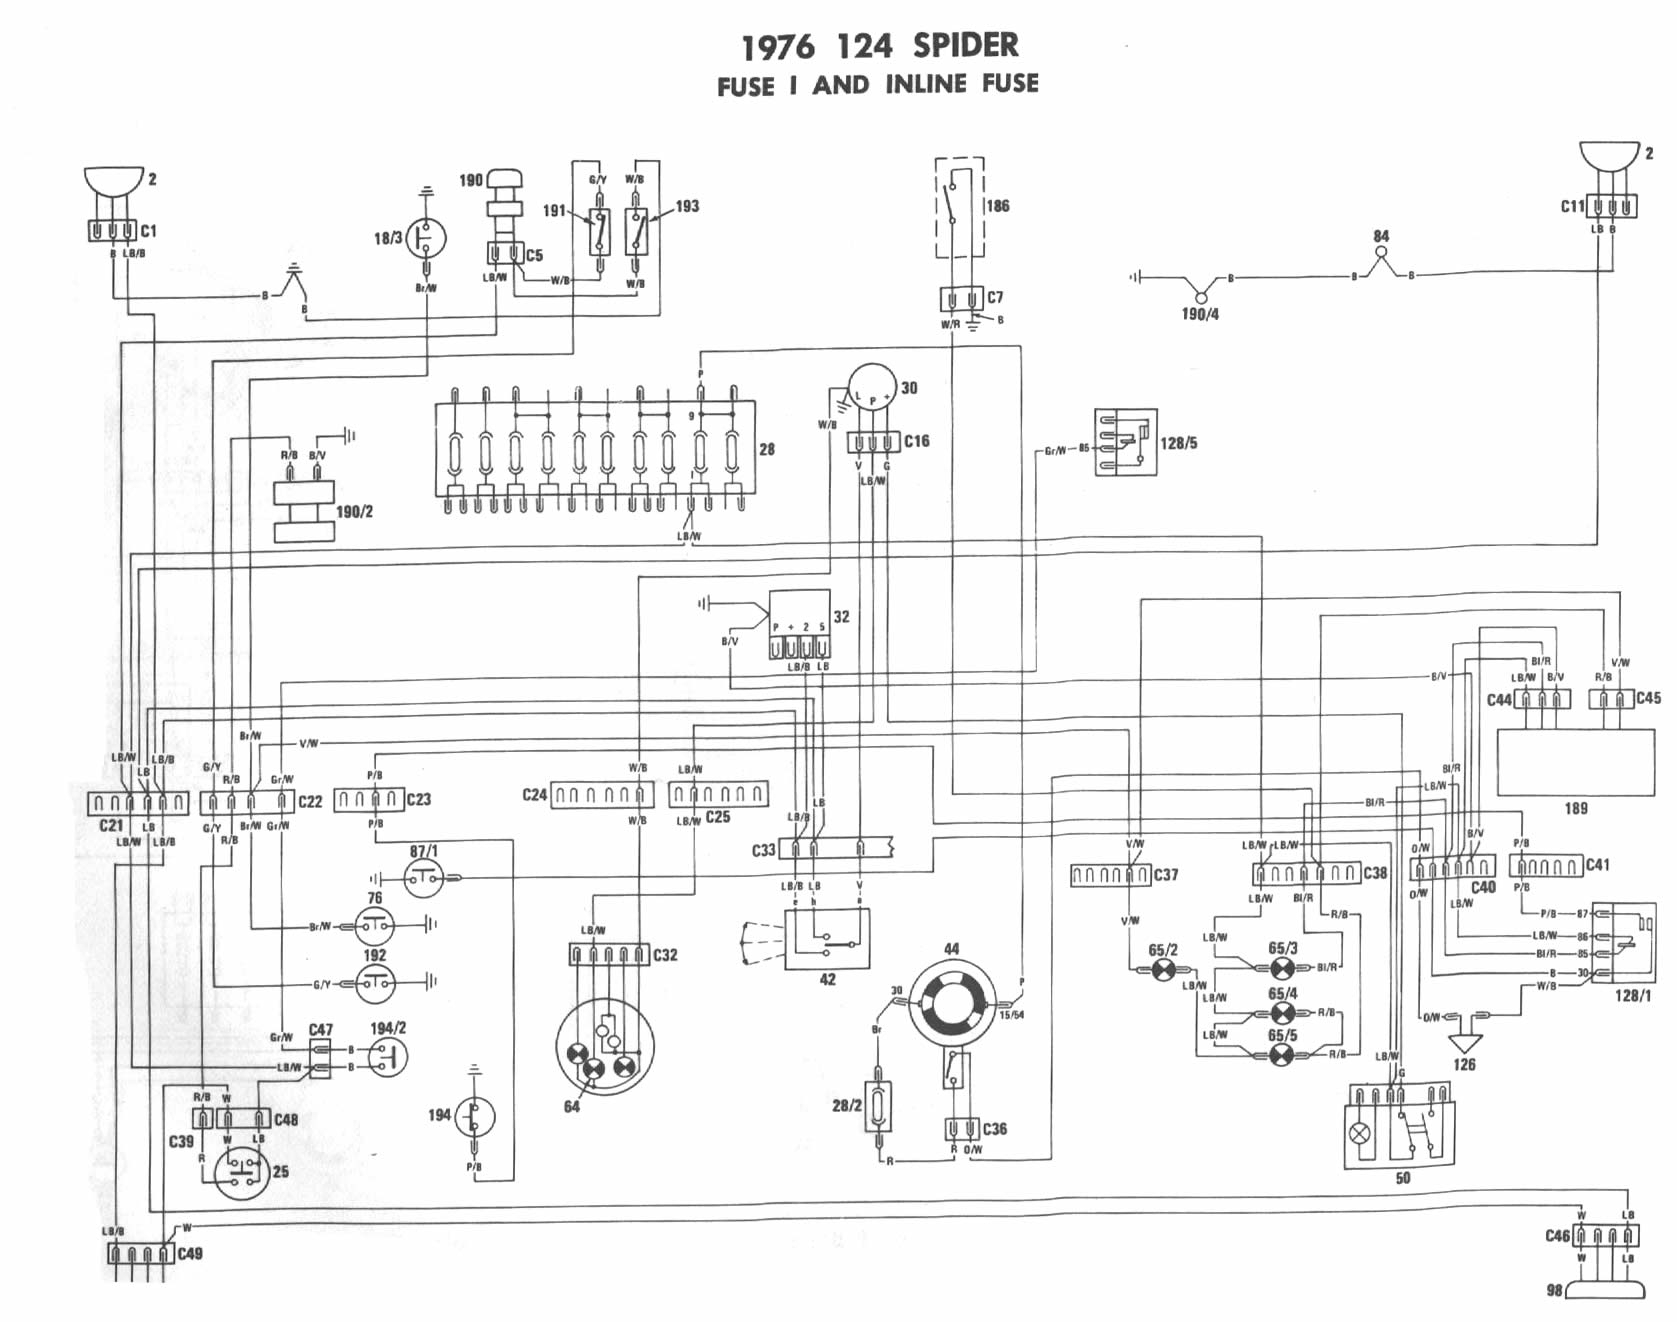 1975 fiat 124 spider wiring diagram Download-Fiat 124 Wiring Diagram Collection 1975 Fiat Wiring Diagram Starter Wiring Diagram 1975 Corvette Wiring 18-b